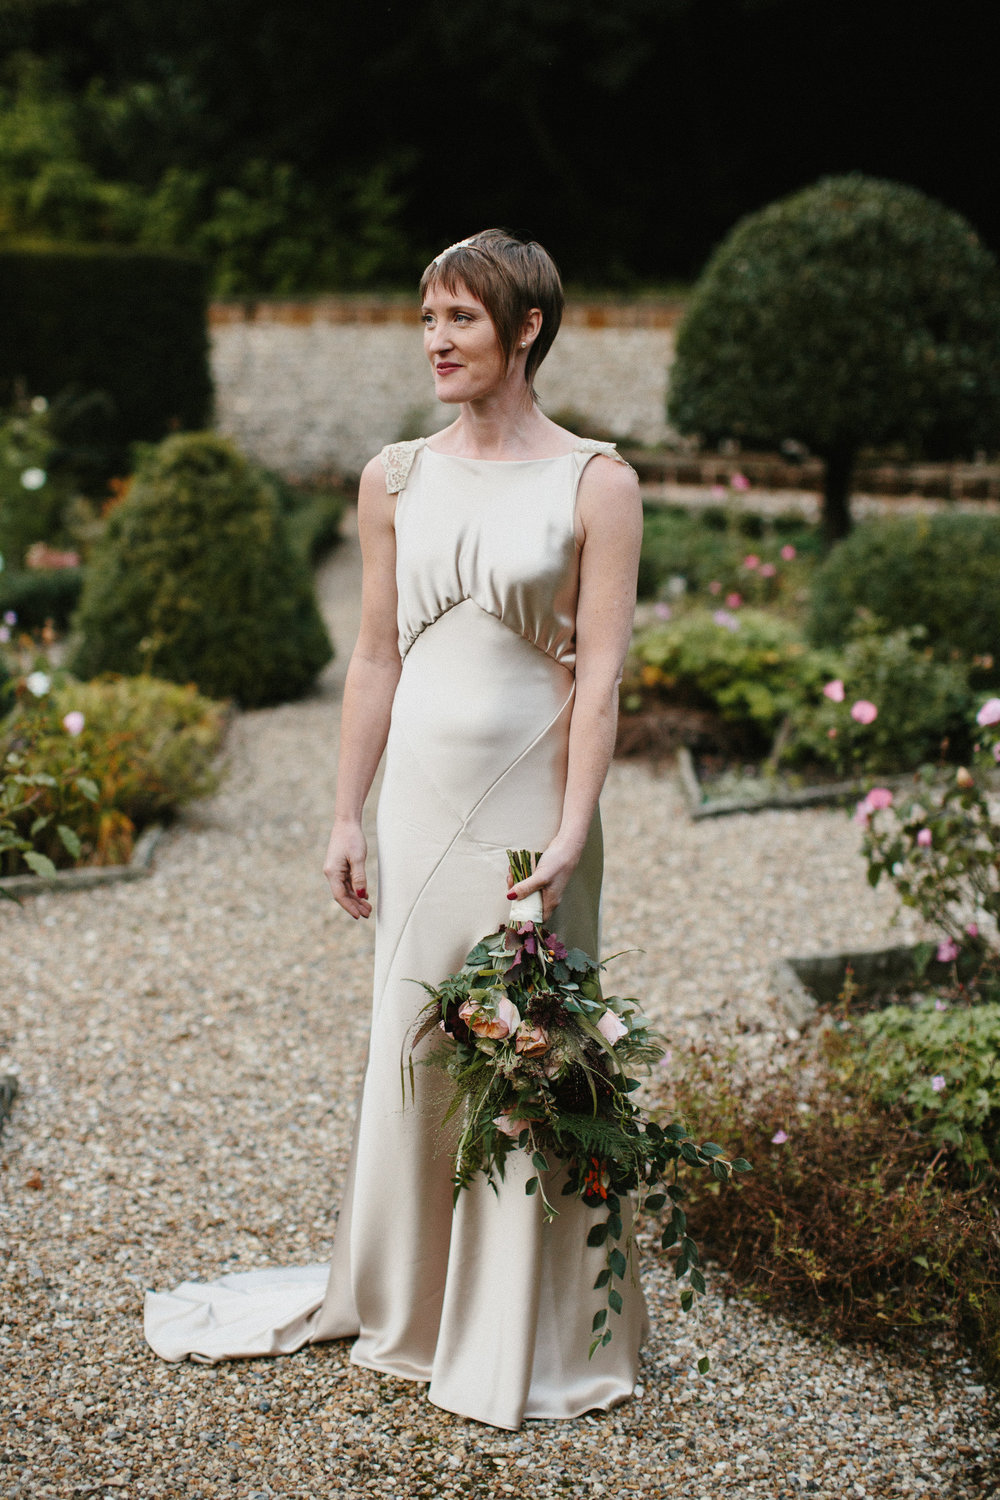 Kate-Beaumont-Sheffield-Honeysuckle-bias-cut-wedding-dress-oyster-Rosie43.jpg